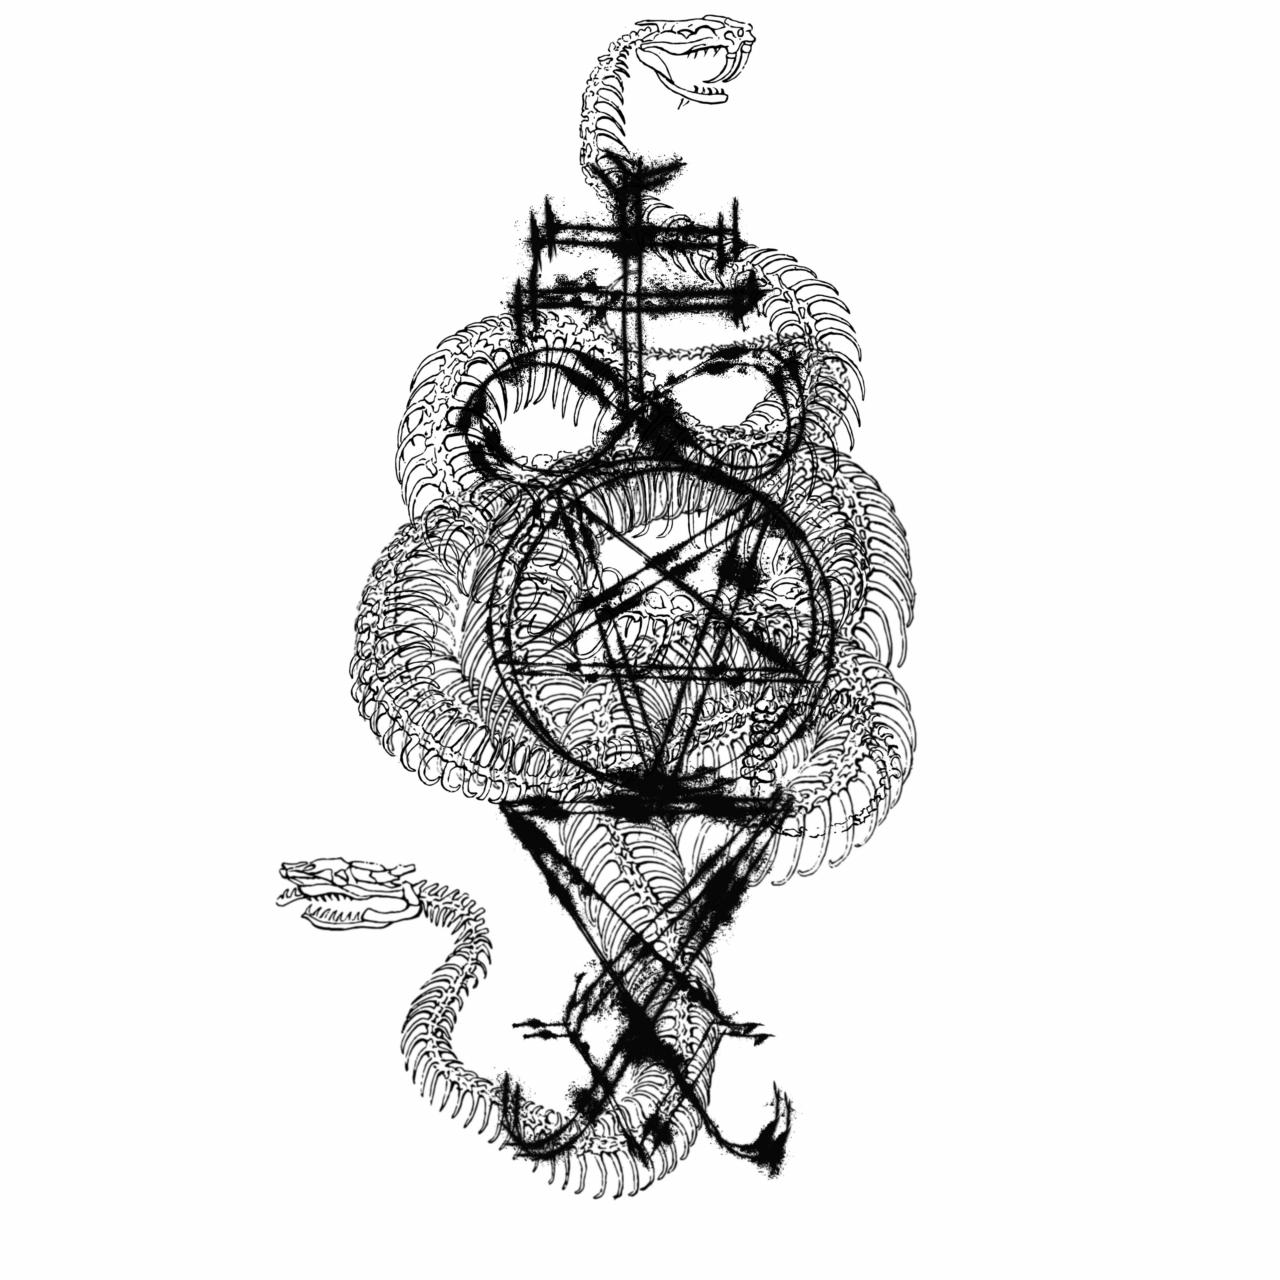 the leviathan cross, the inverted pentagram and the sigil of Lucifer - custom design for a badass redditor - PM for custom designs